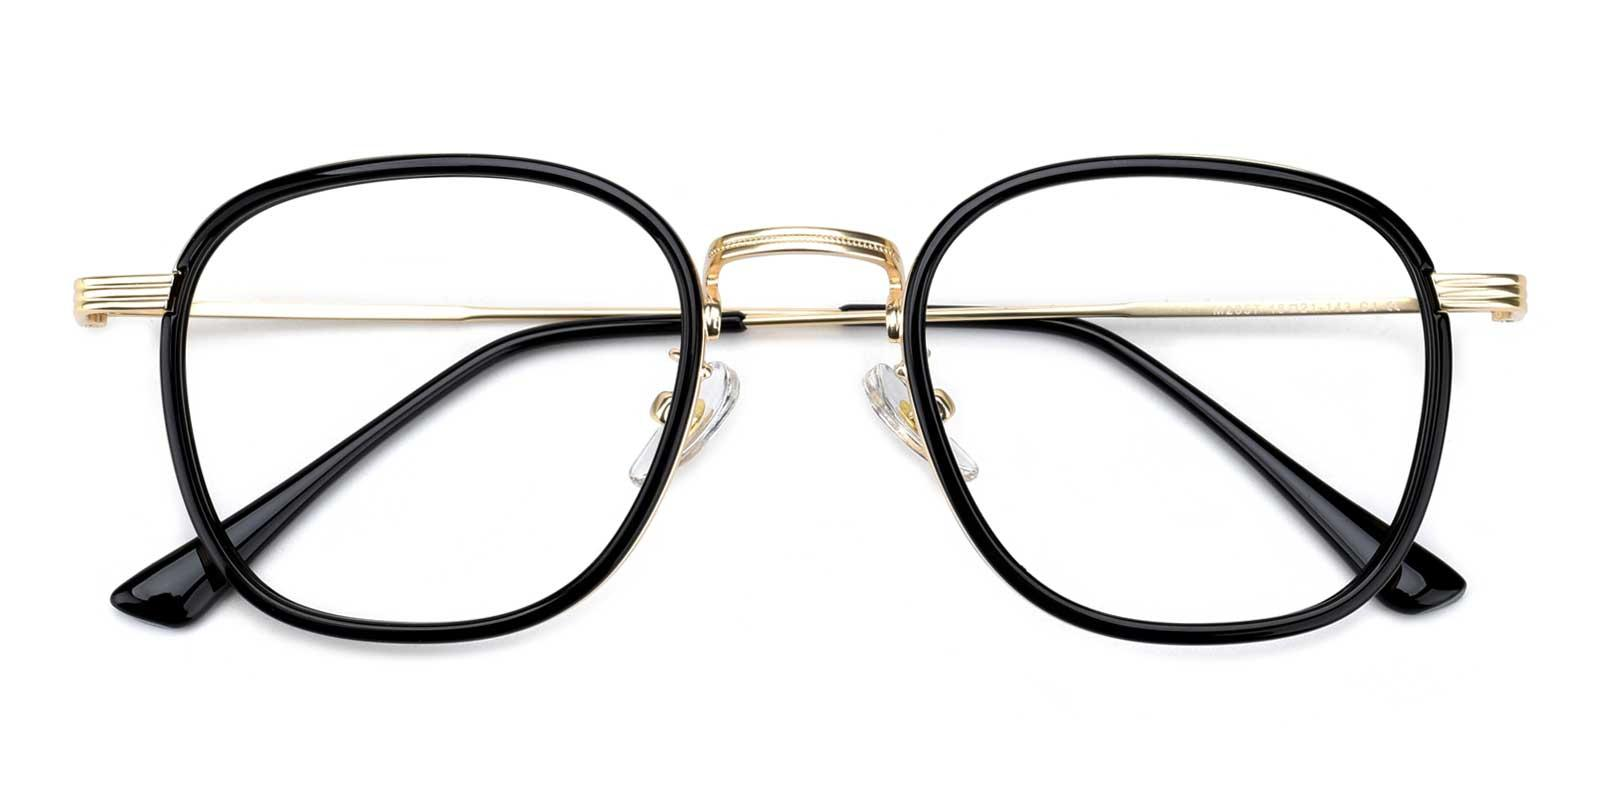 Genmai-Black-Square-Metal-Eyeglasses-detail